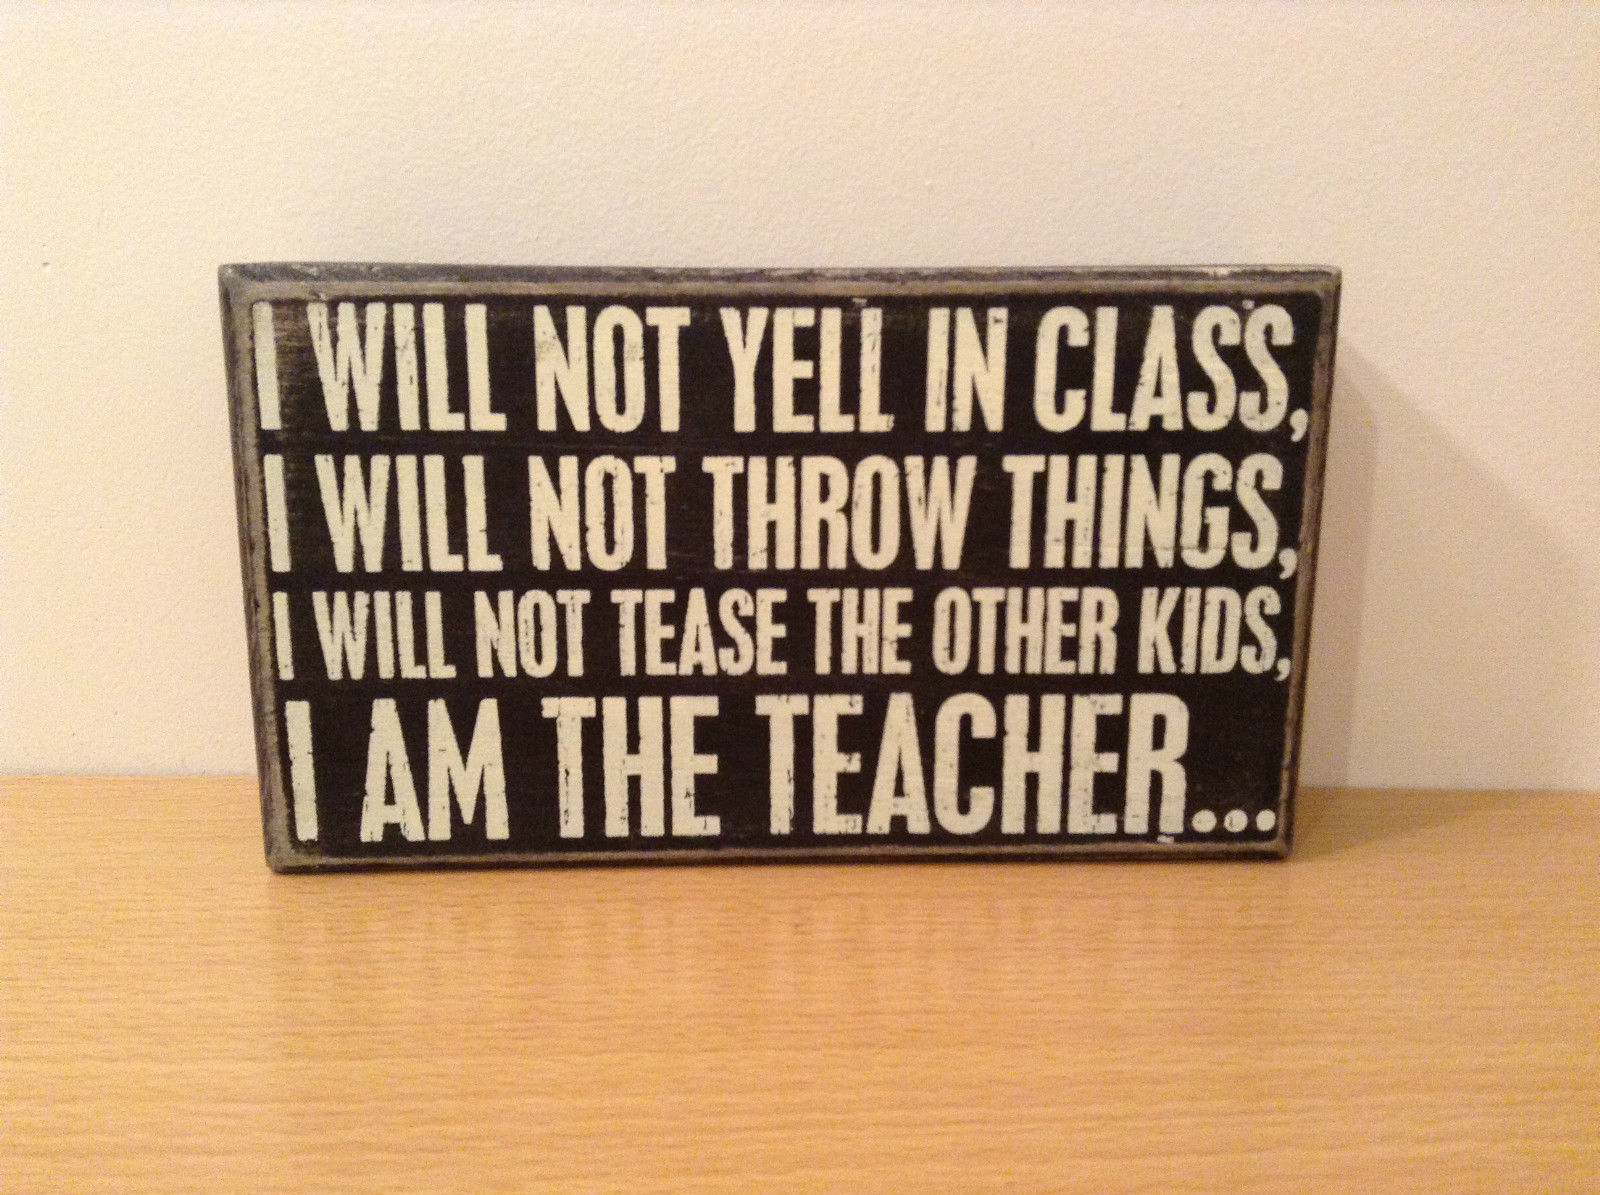 I Will Not Yell In Class I will not throw things I will not tease I am  teacher